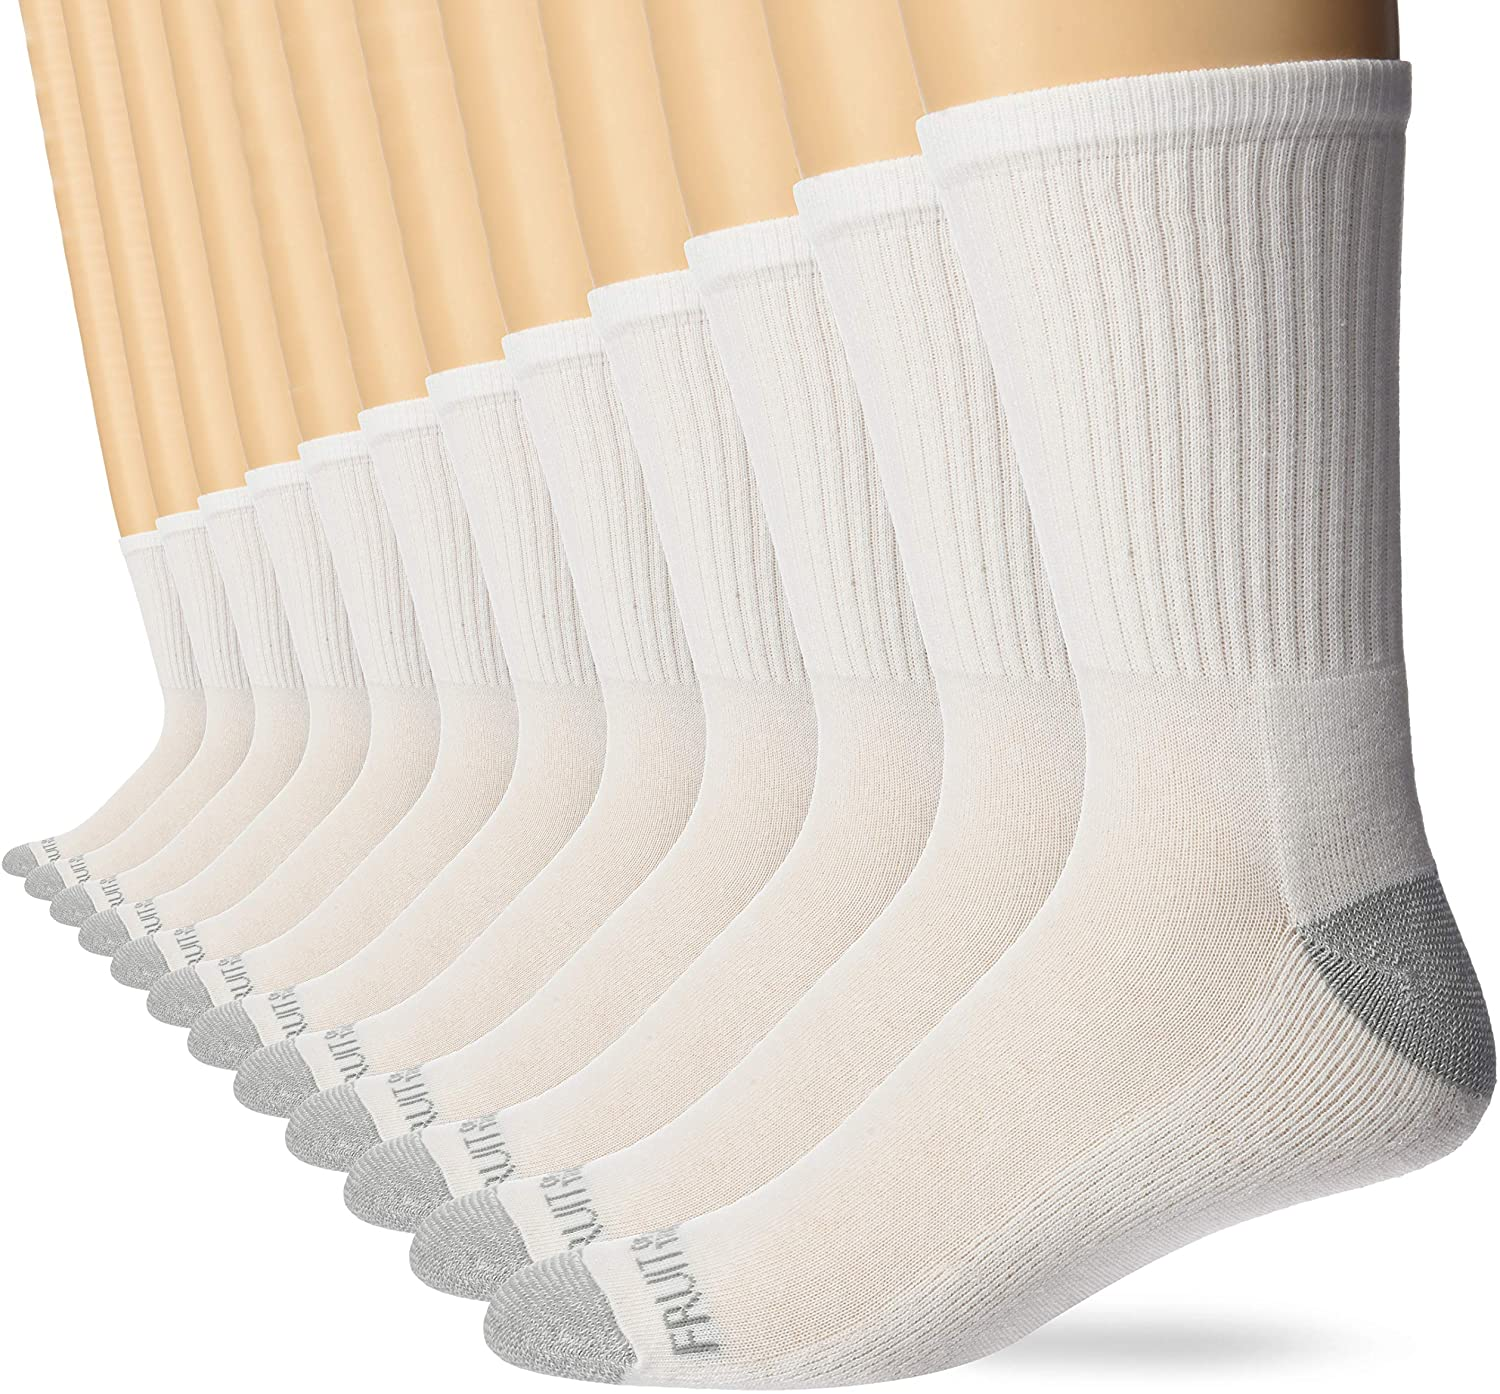 Fruit of the Loom Men's Dual Defense Crew Socks (12 Pack)